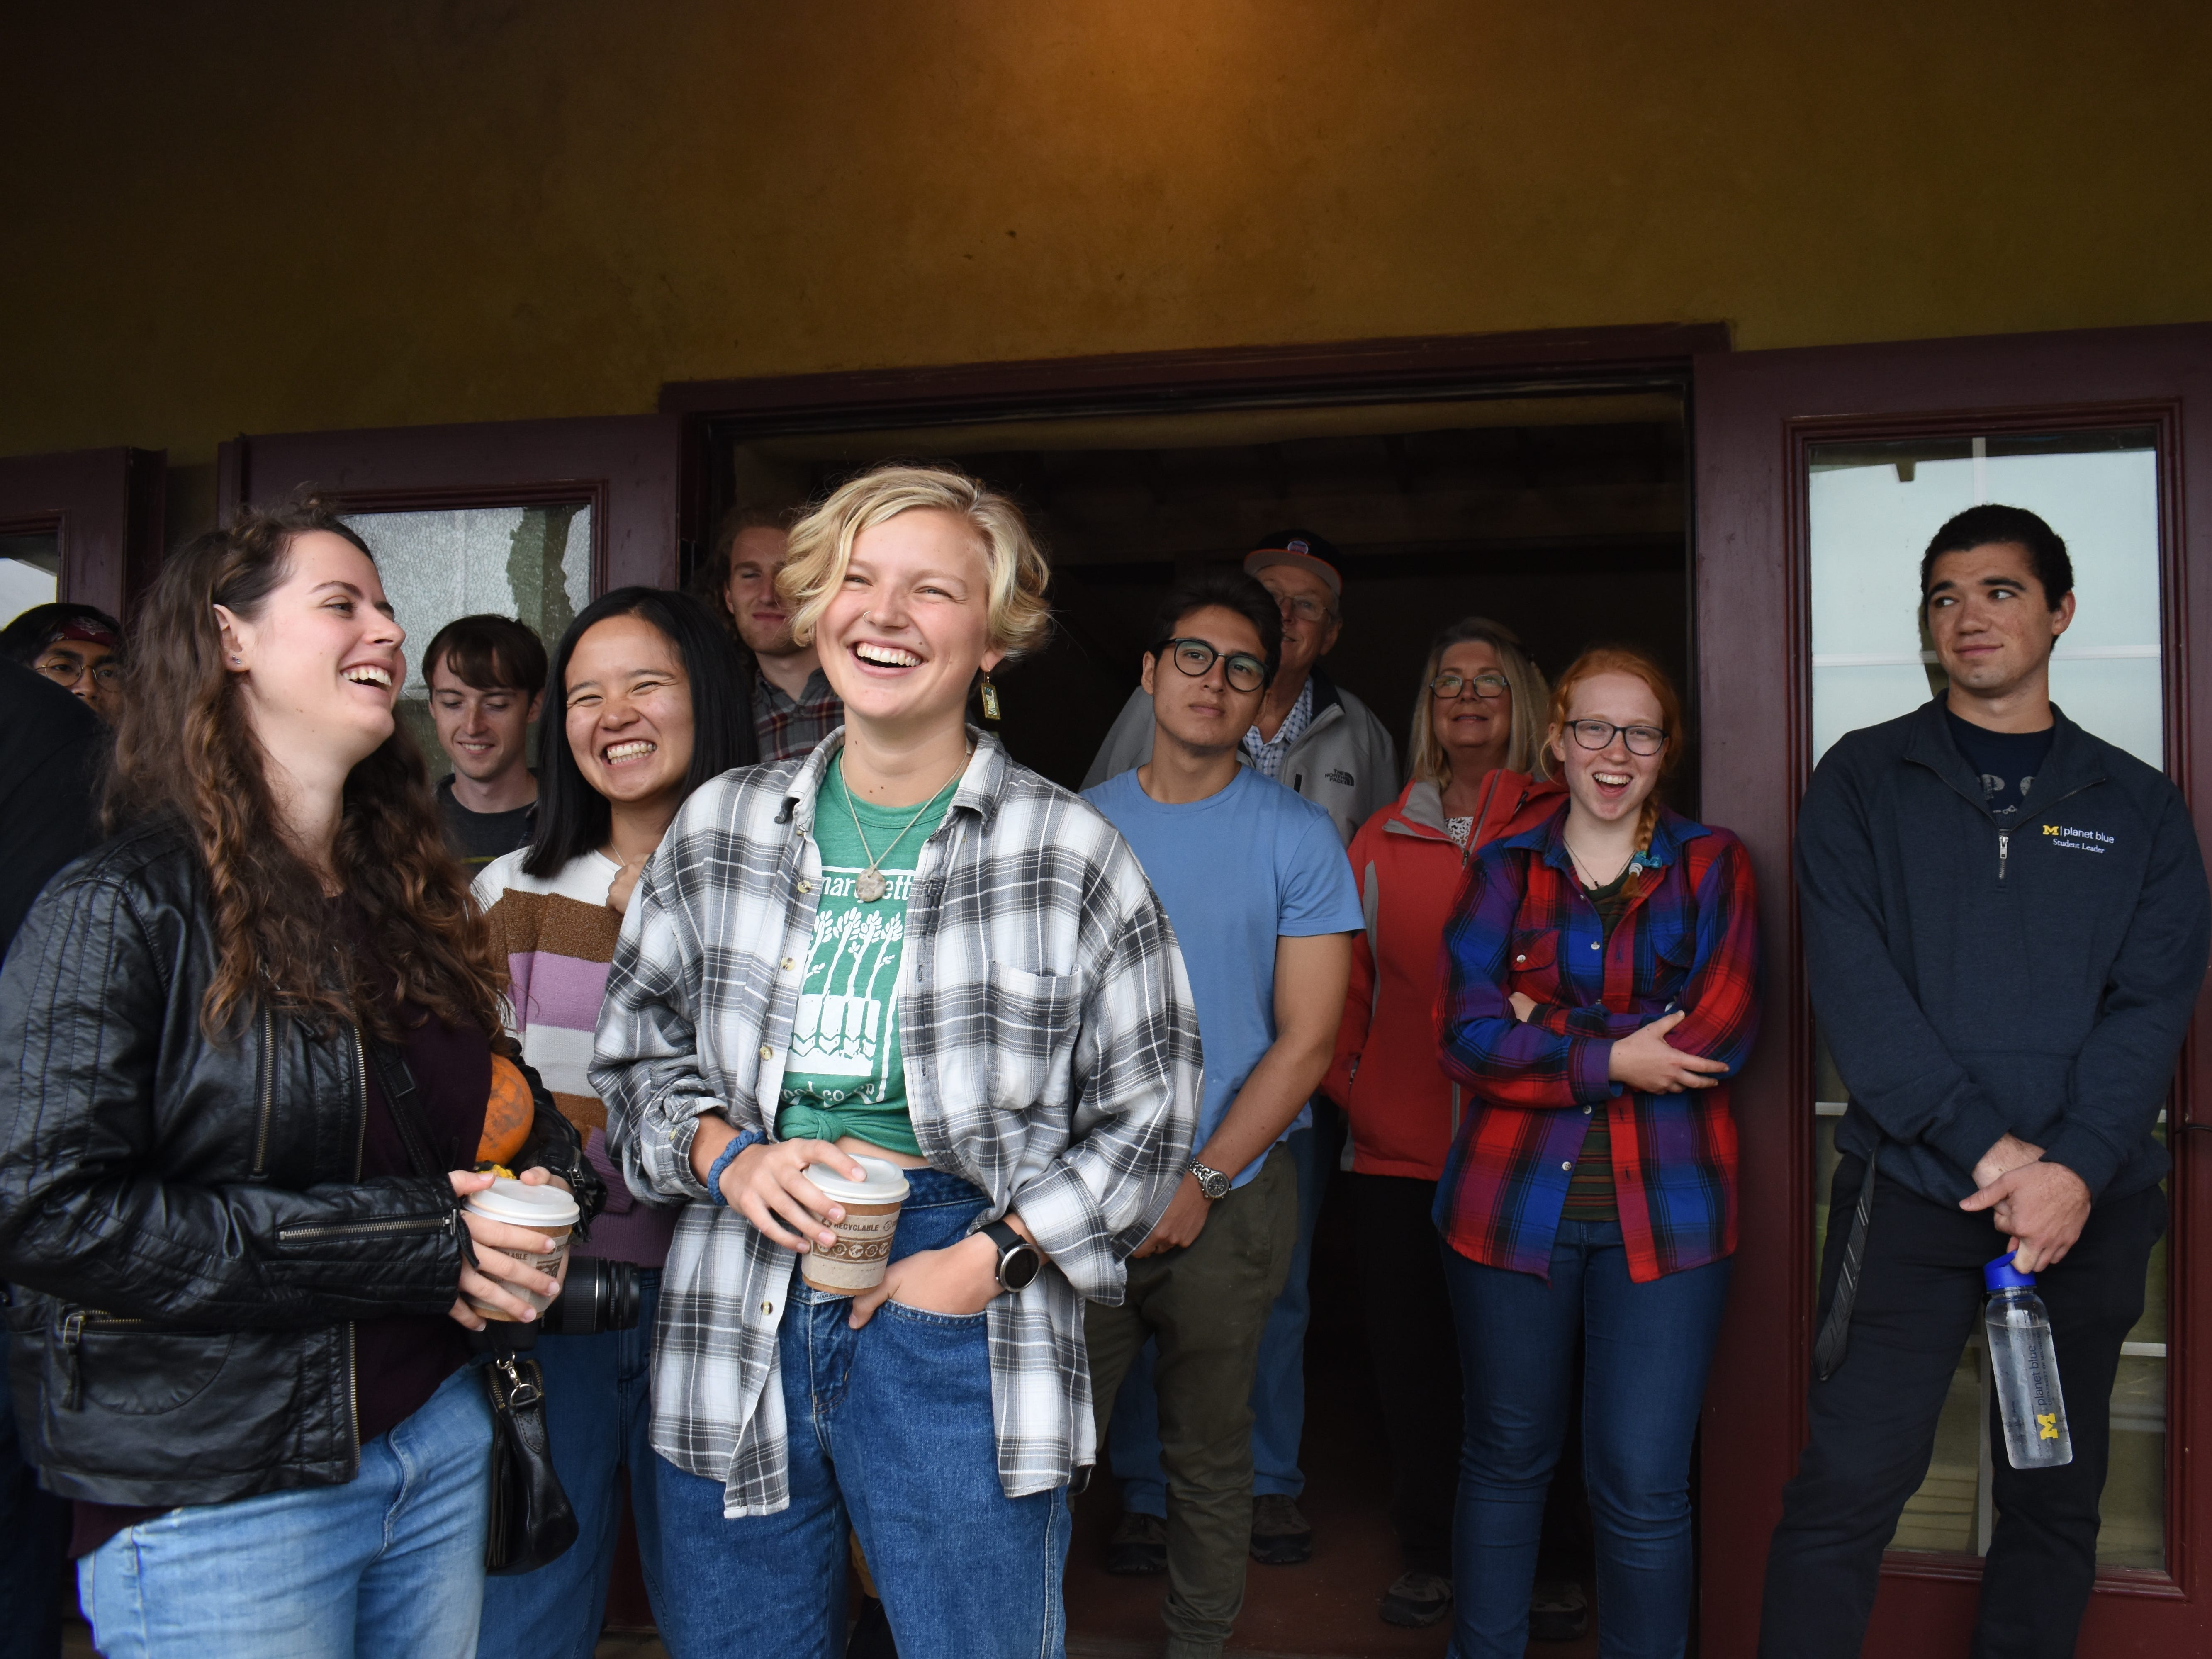 Students, many of whom built the Straw Bale House themselves, line the porch with other visitors to listen to a brief ceremony celebrating the building's  public unveiling.